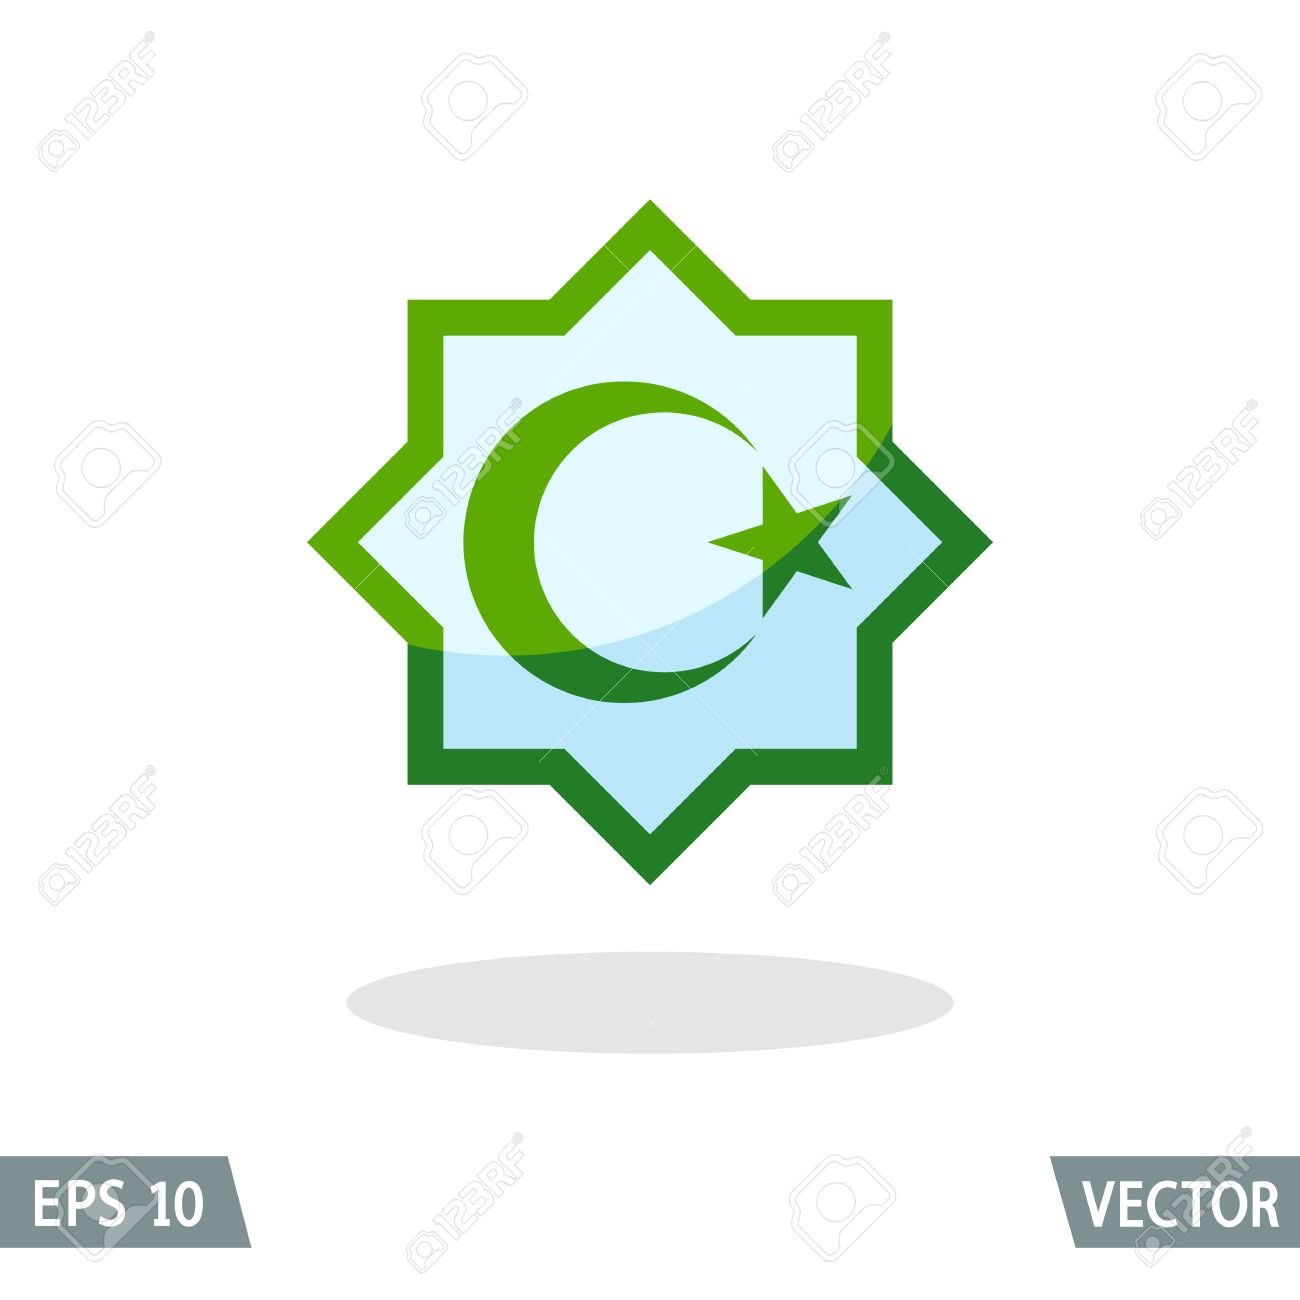 Symbol of islam star and crescent in the octagon color icon symbol of islam star and crescent in the octagon color icon vector illustration for biocorpaavc